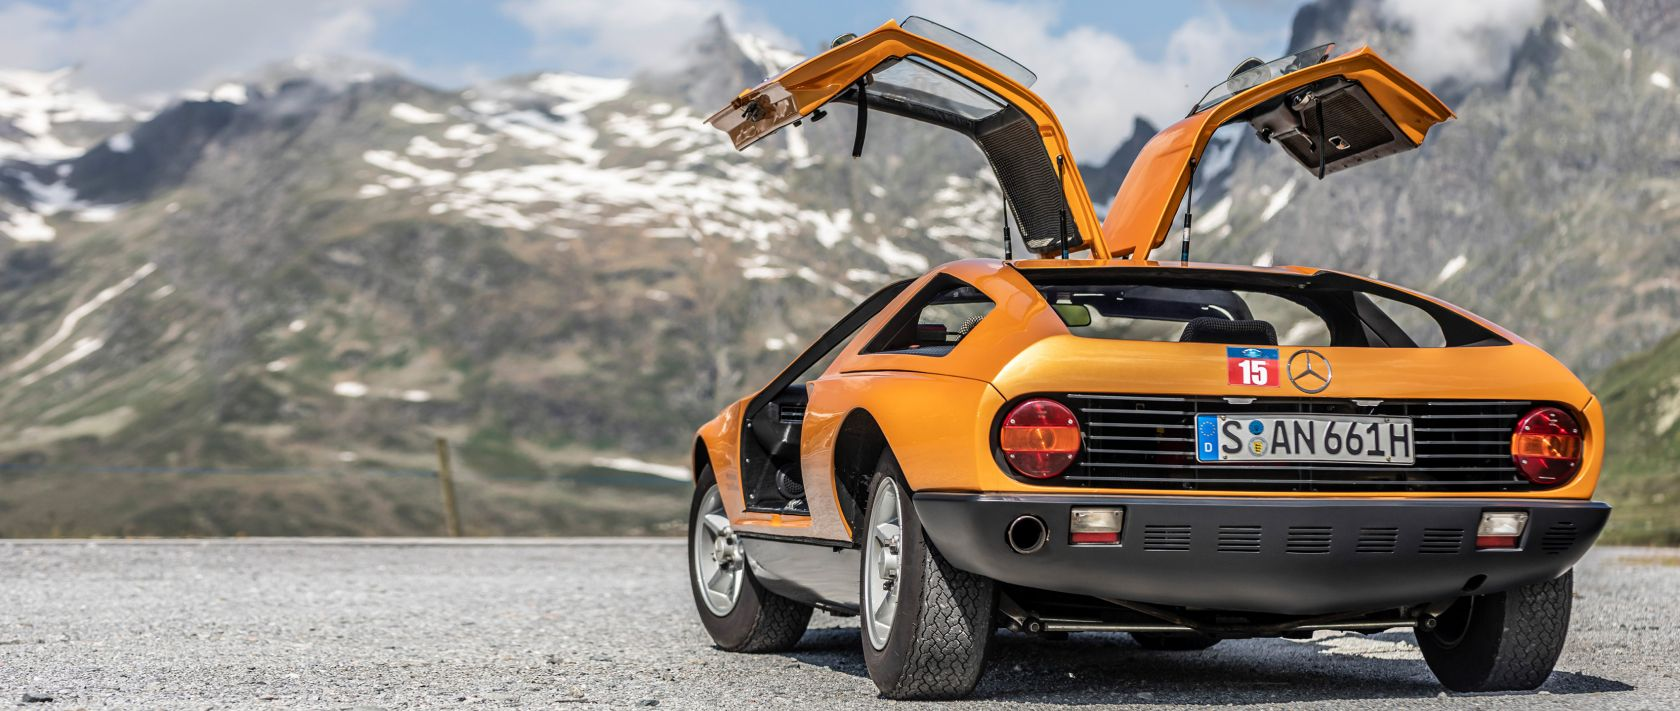 The Mercedes-Benz C 111 is always worth a look, not least because of its gullwing doors.